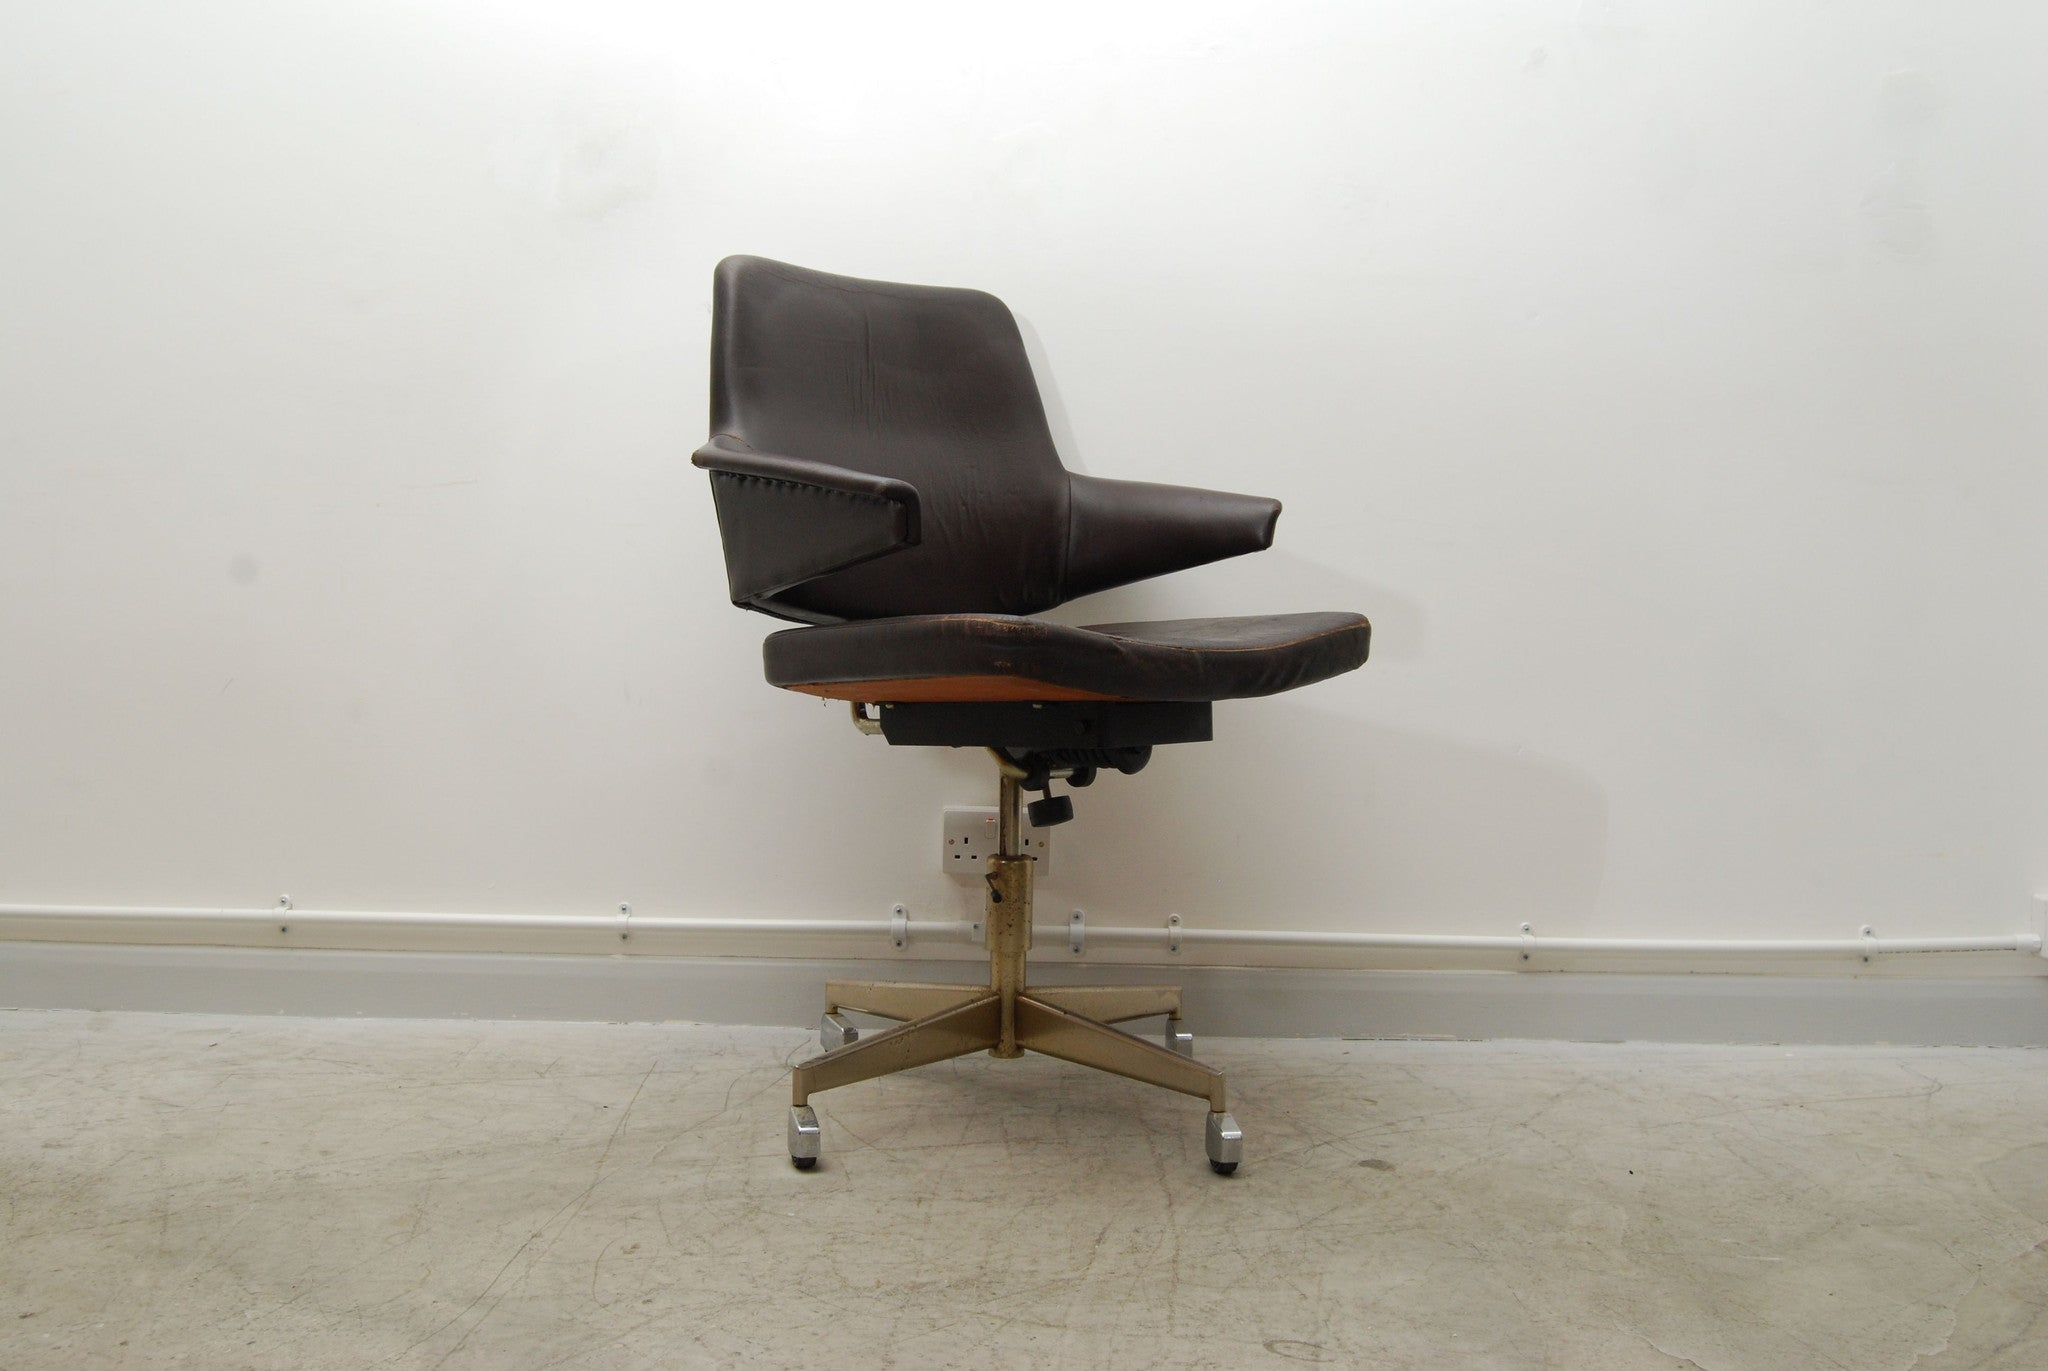 Chase & Sorensen Swivelling desk chair with winged arms